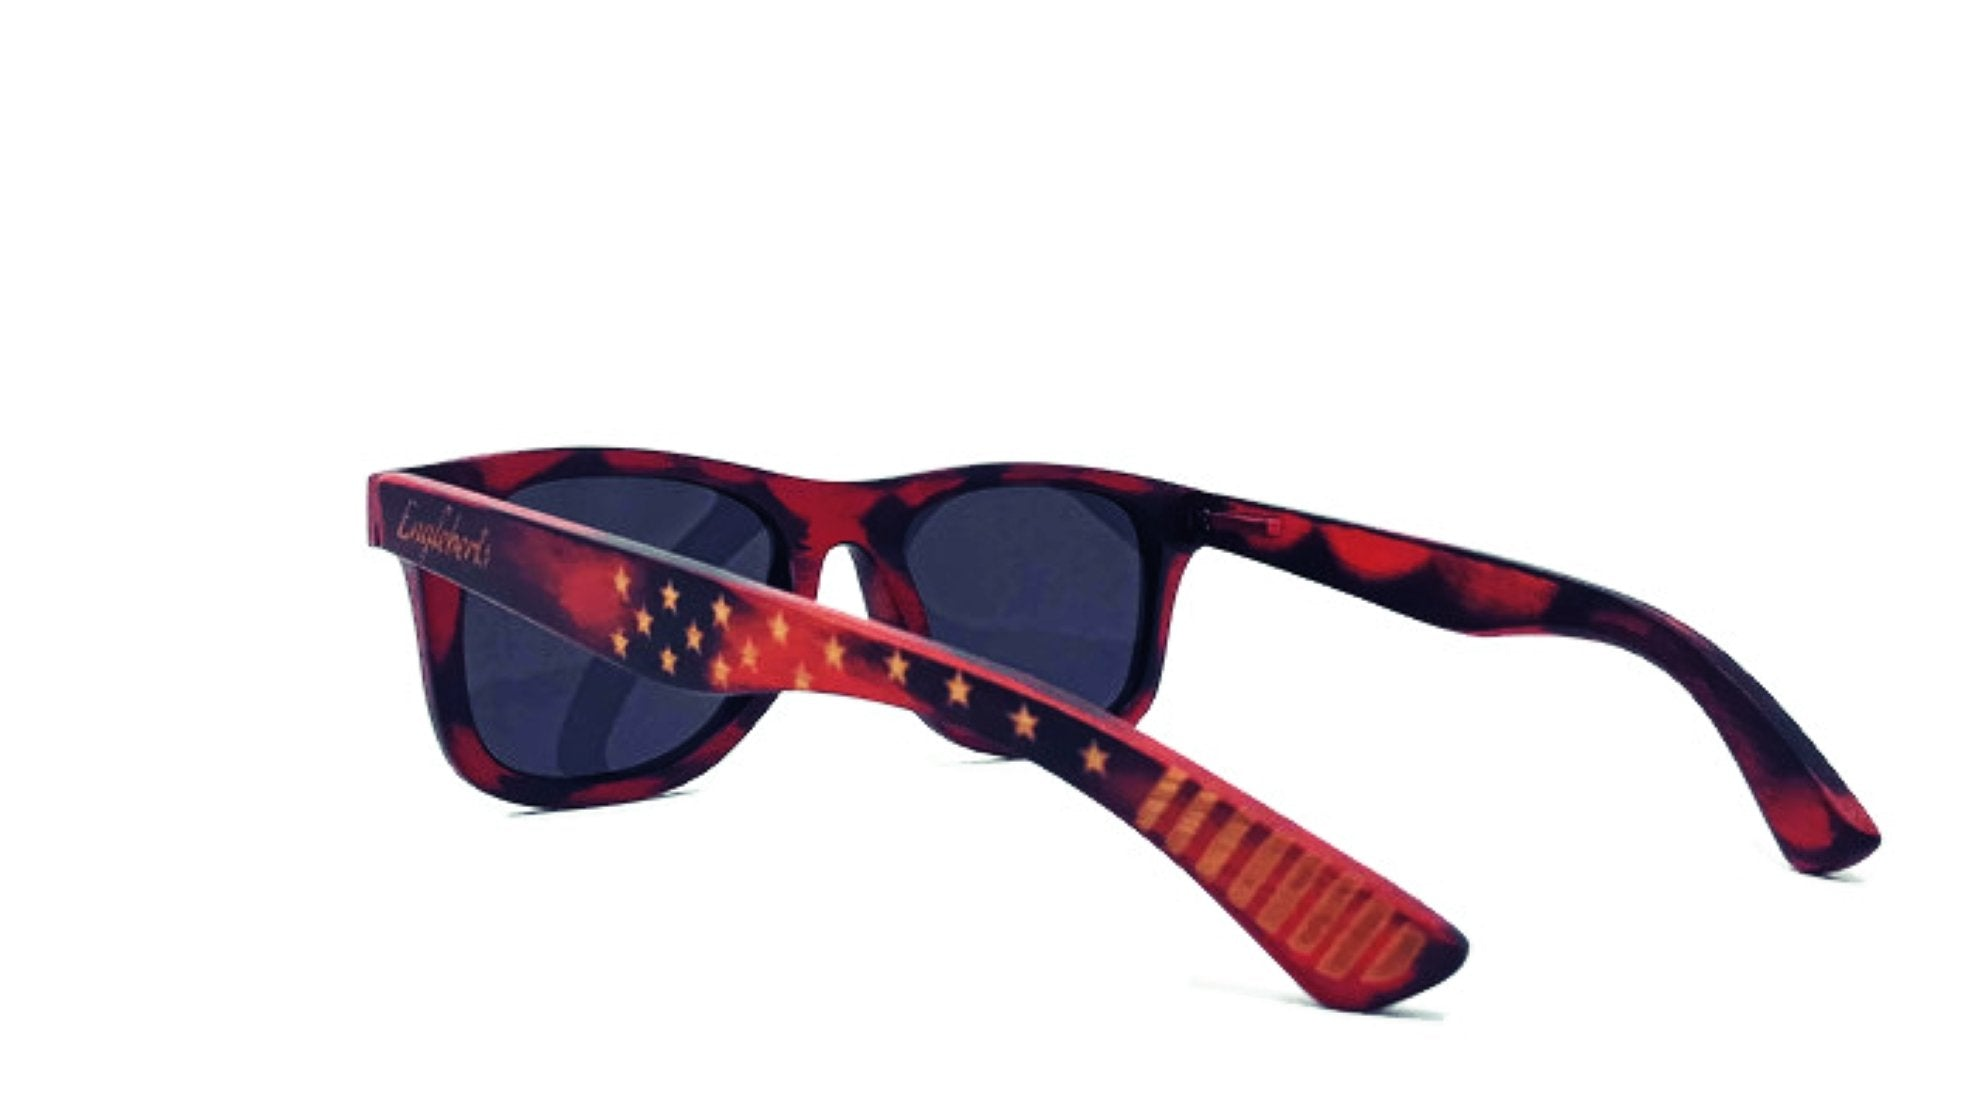 Red Burnt Bamboo Sunglasses With Wood Case